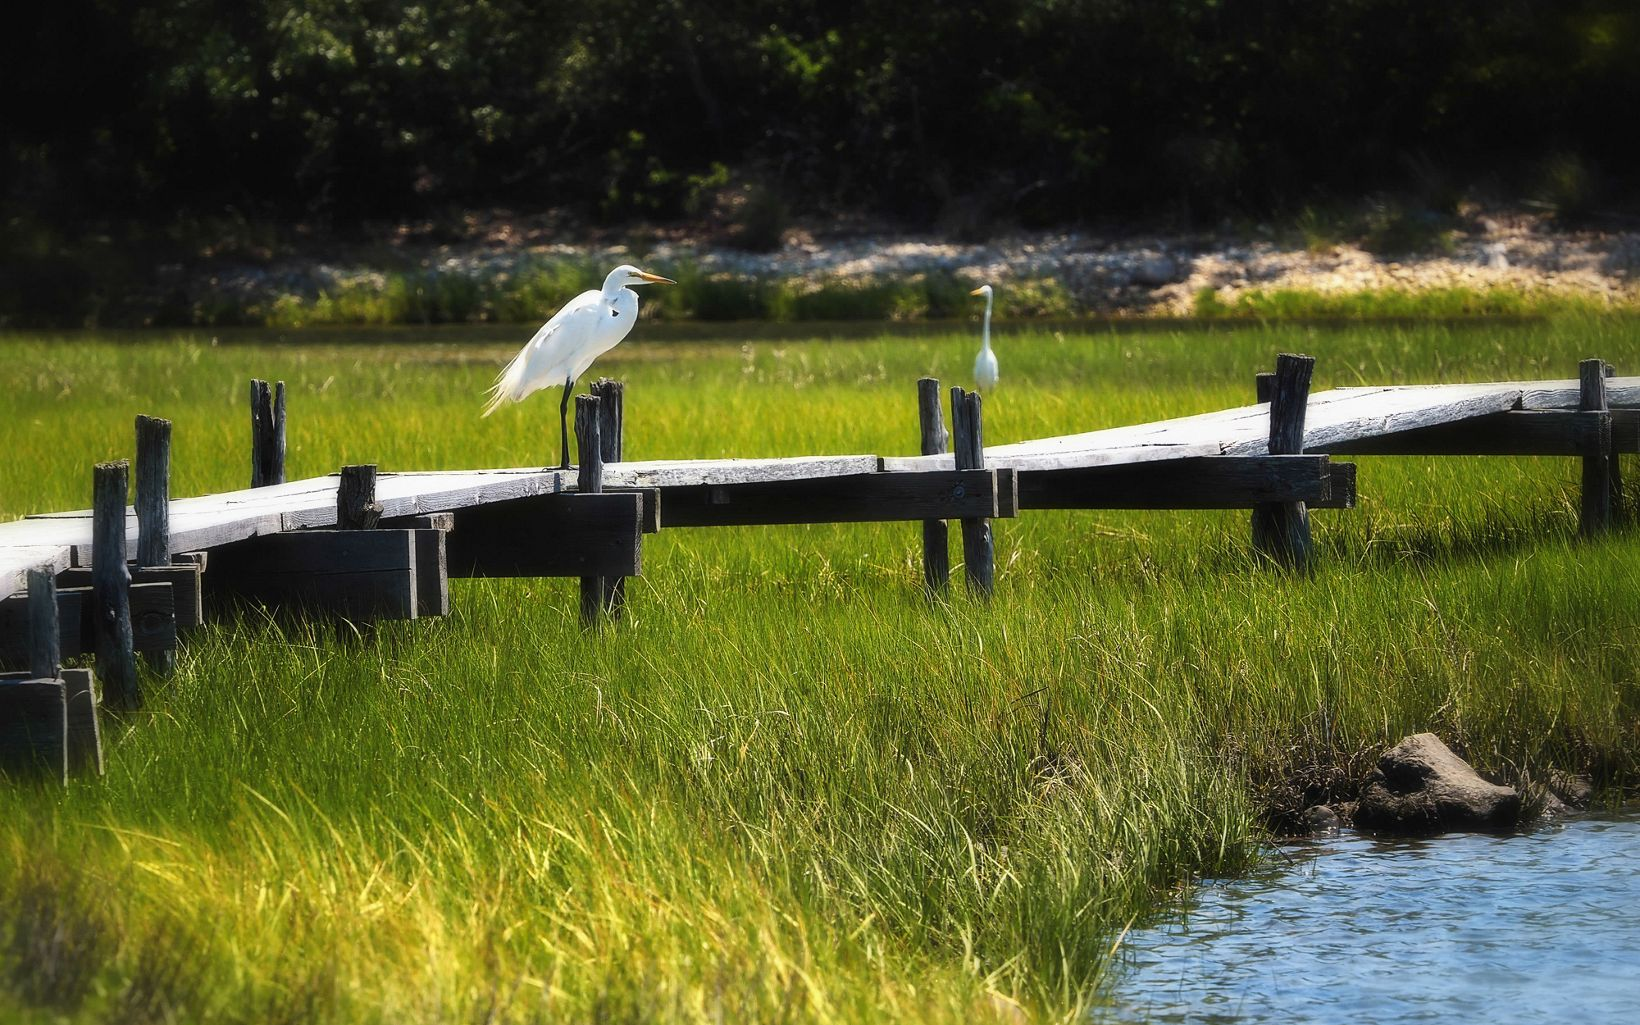 Two large white cranes on a wooden pier over marsh grasses.